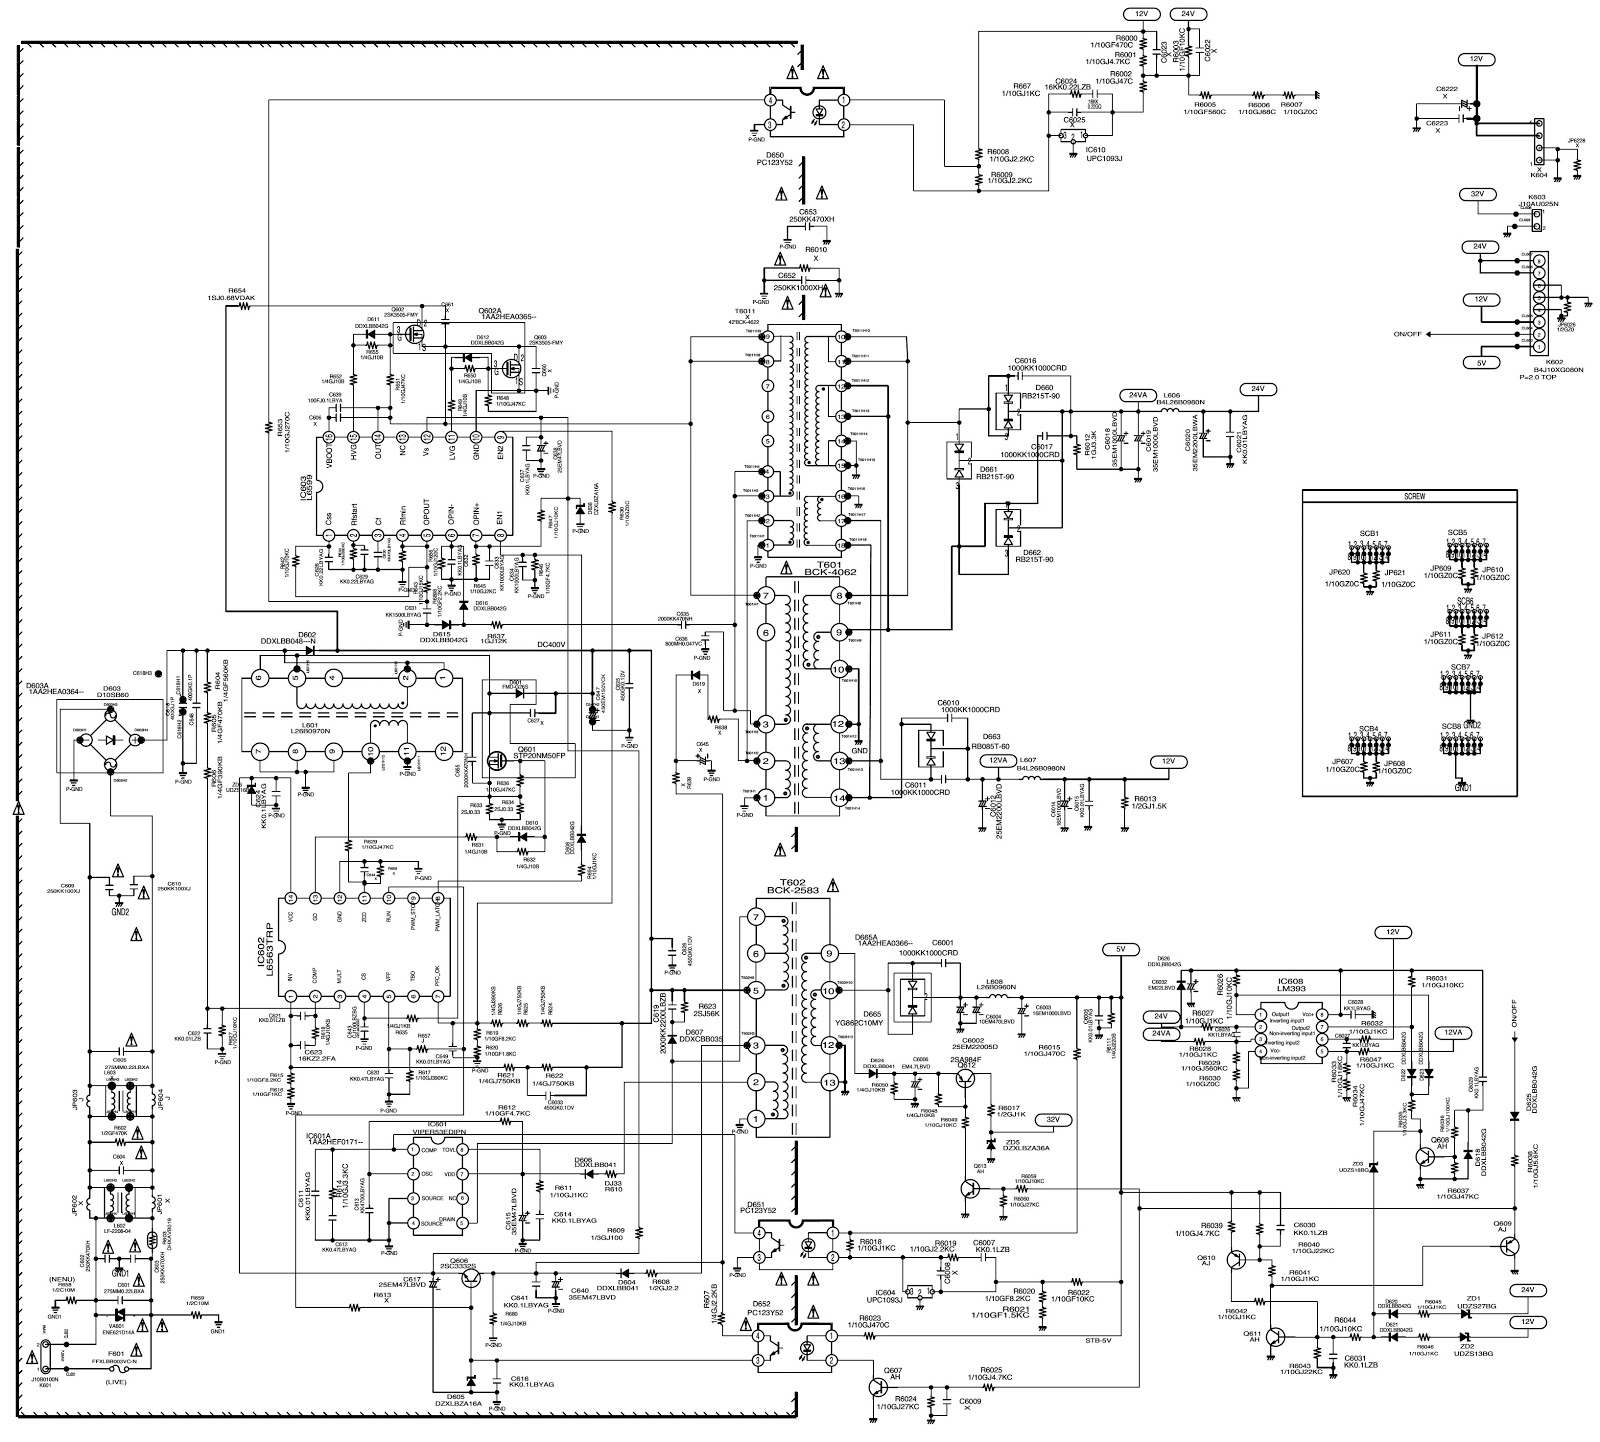 sanyo no frost refrigerator wiring diagram new model wiring diagramwiring diagram for sanyo dishwasher wiring diagramwiring diagram for sanyo dishwasher wiring diagramwiring diagram for sanyo